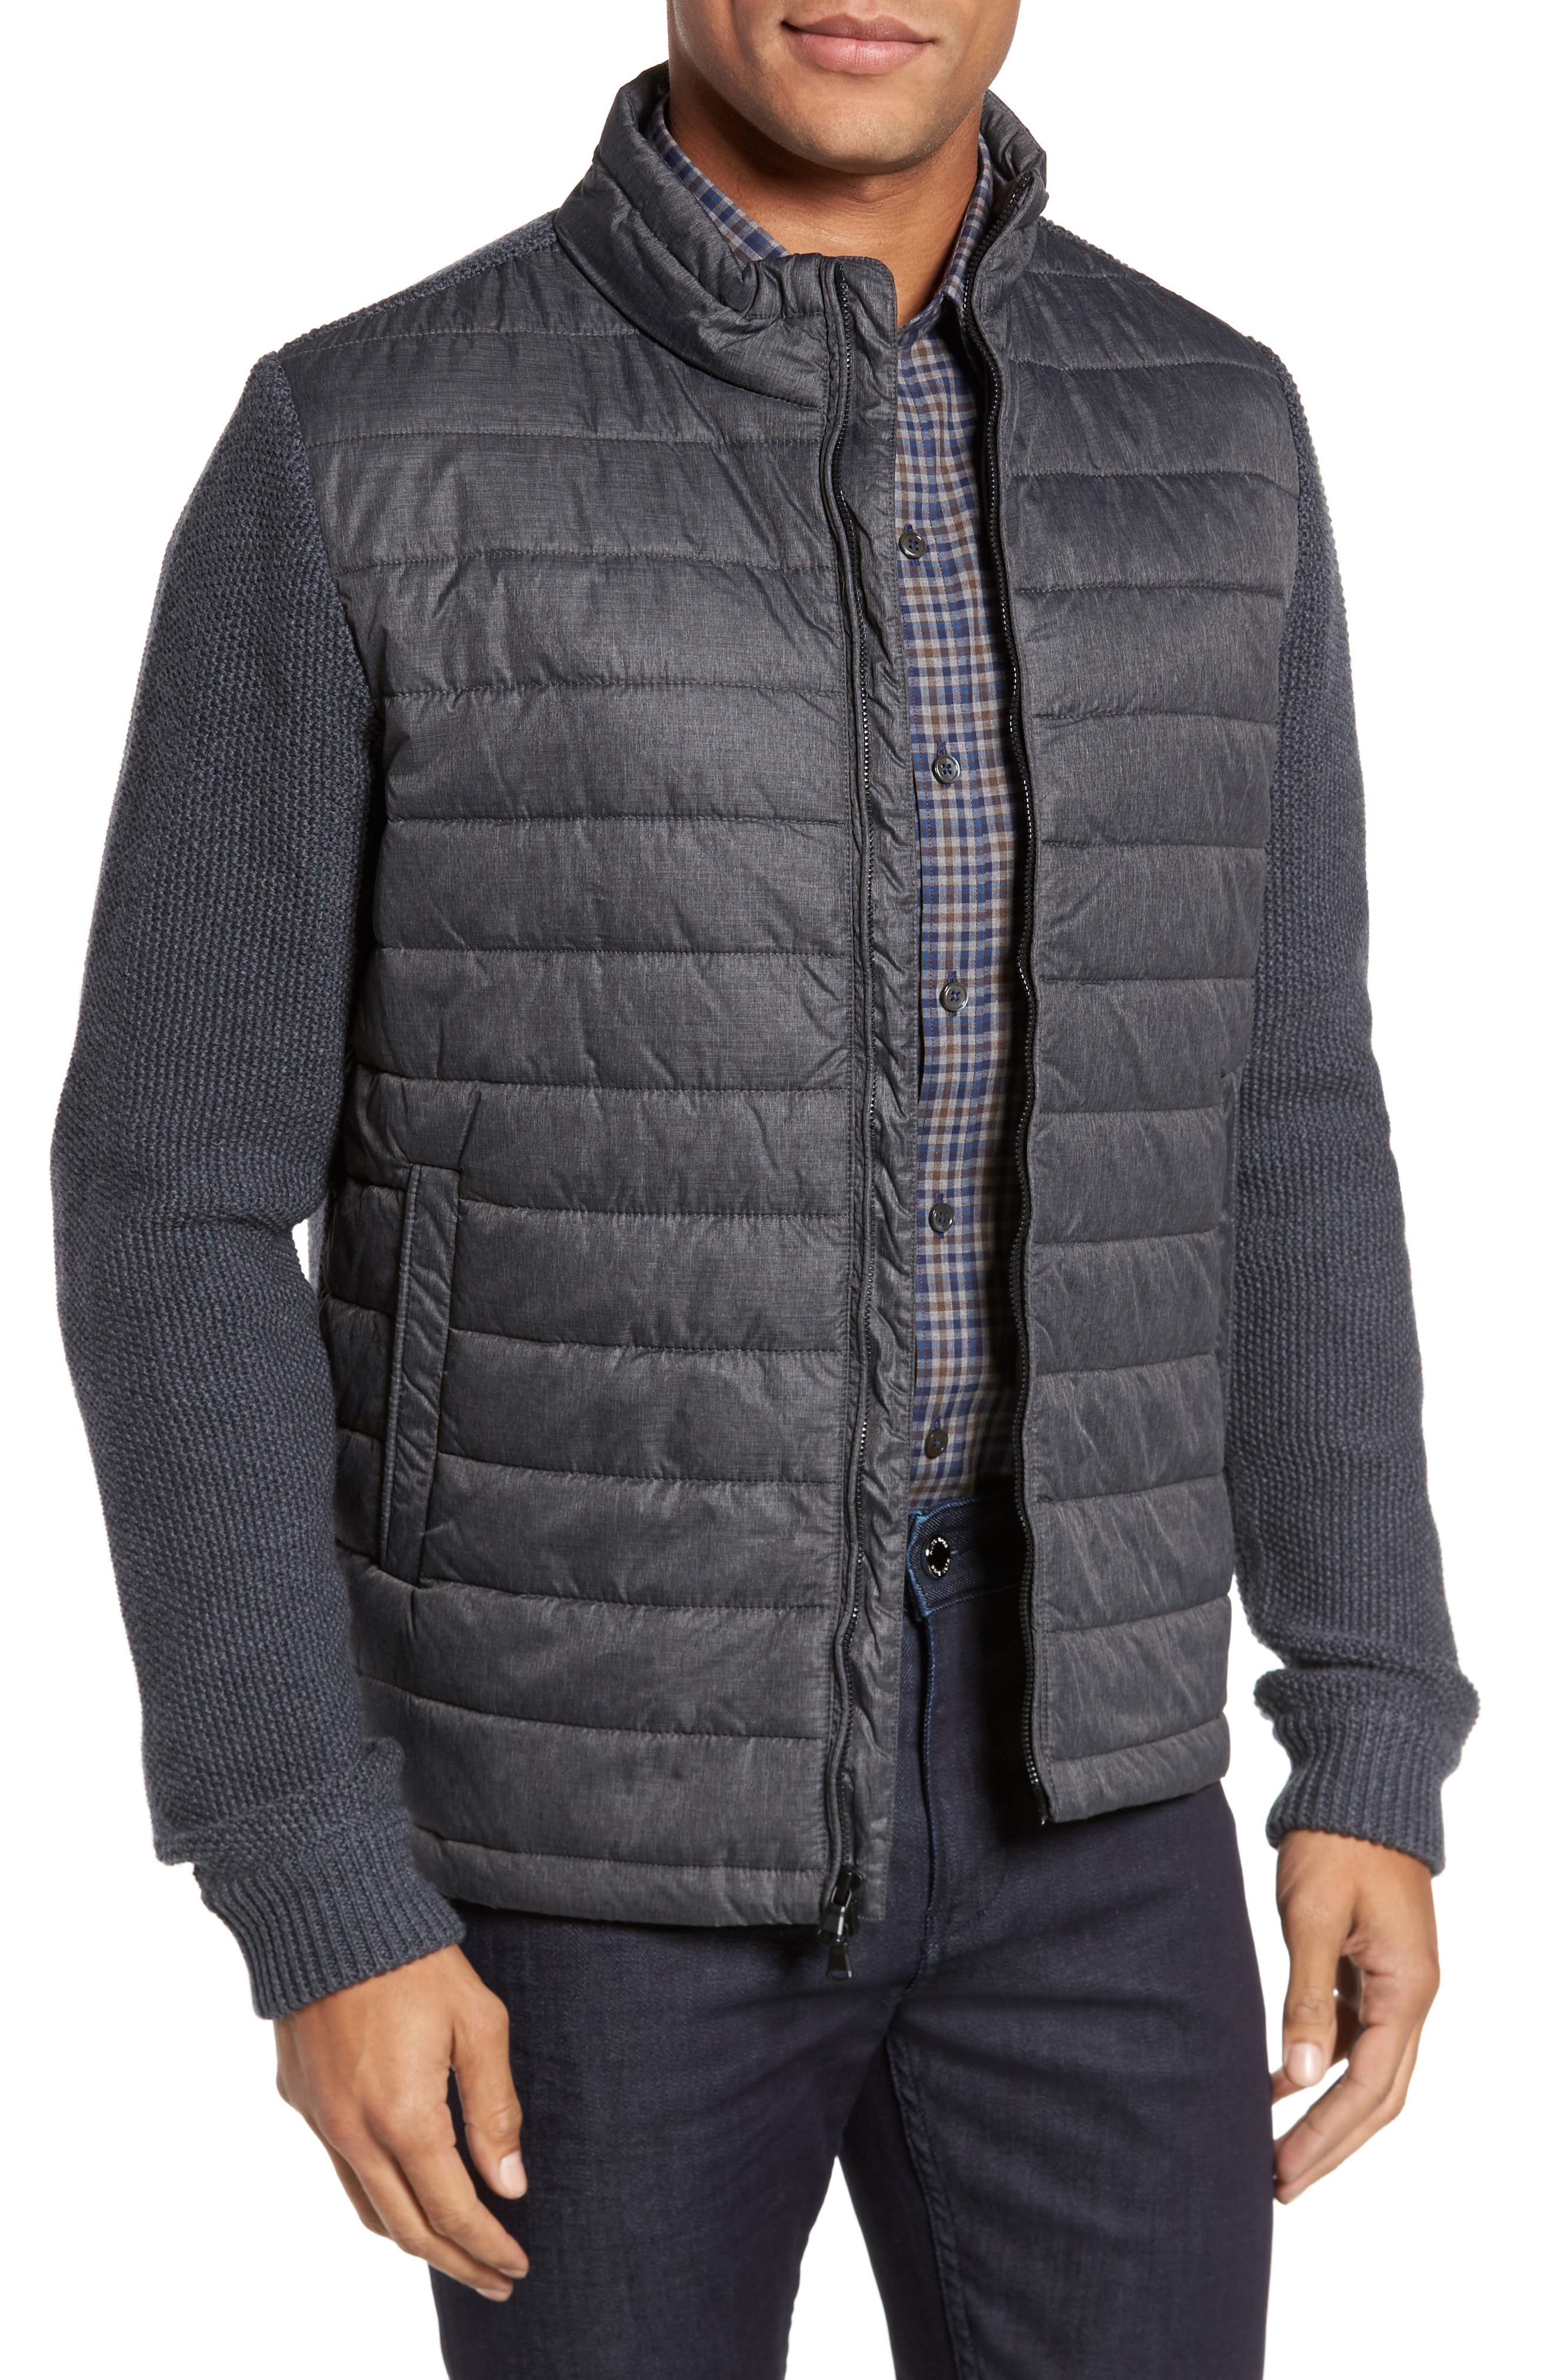 Hinman Quilt Front Merino Cardigan,                         Main,                         color, Charcoal